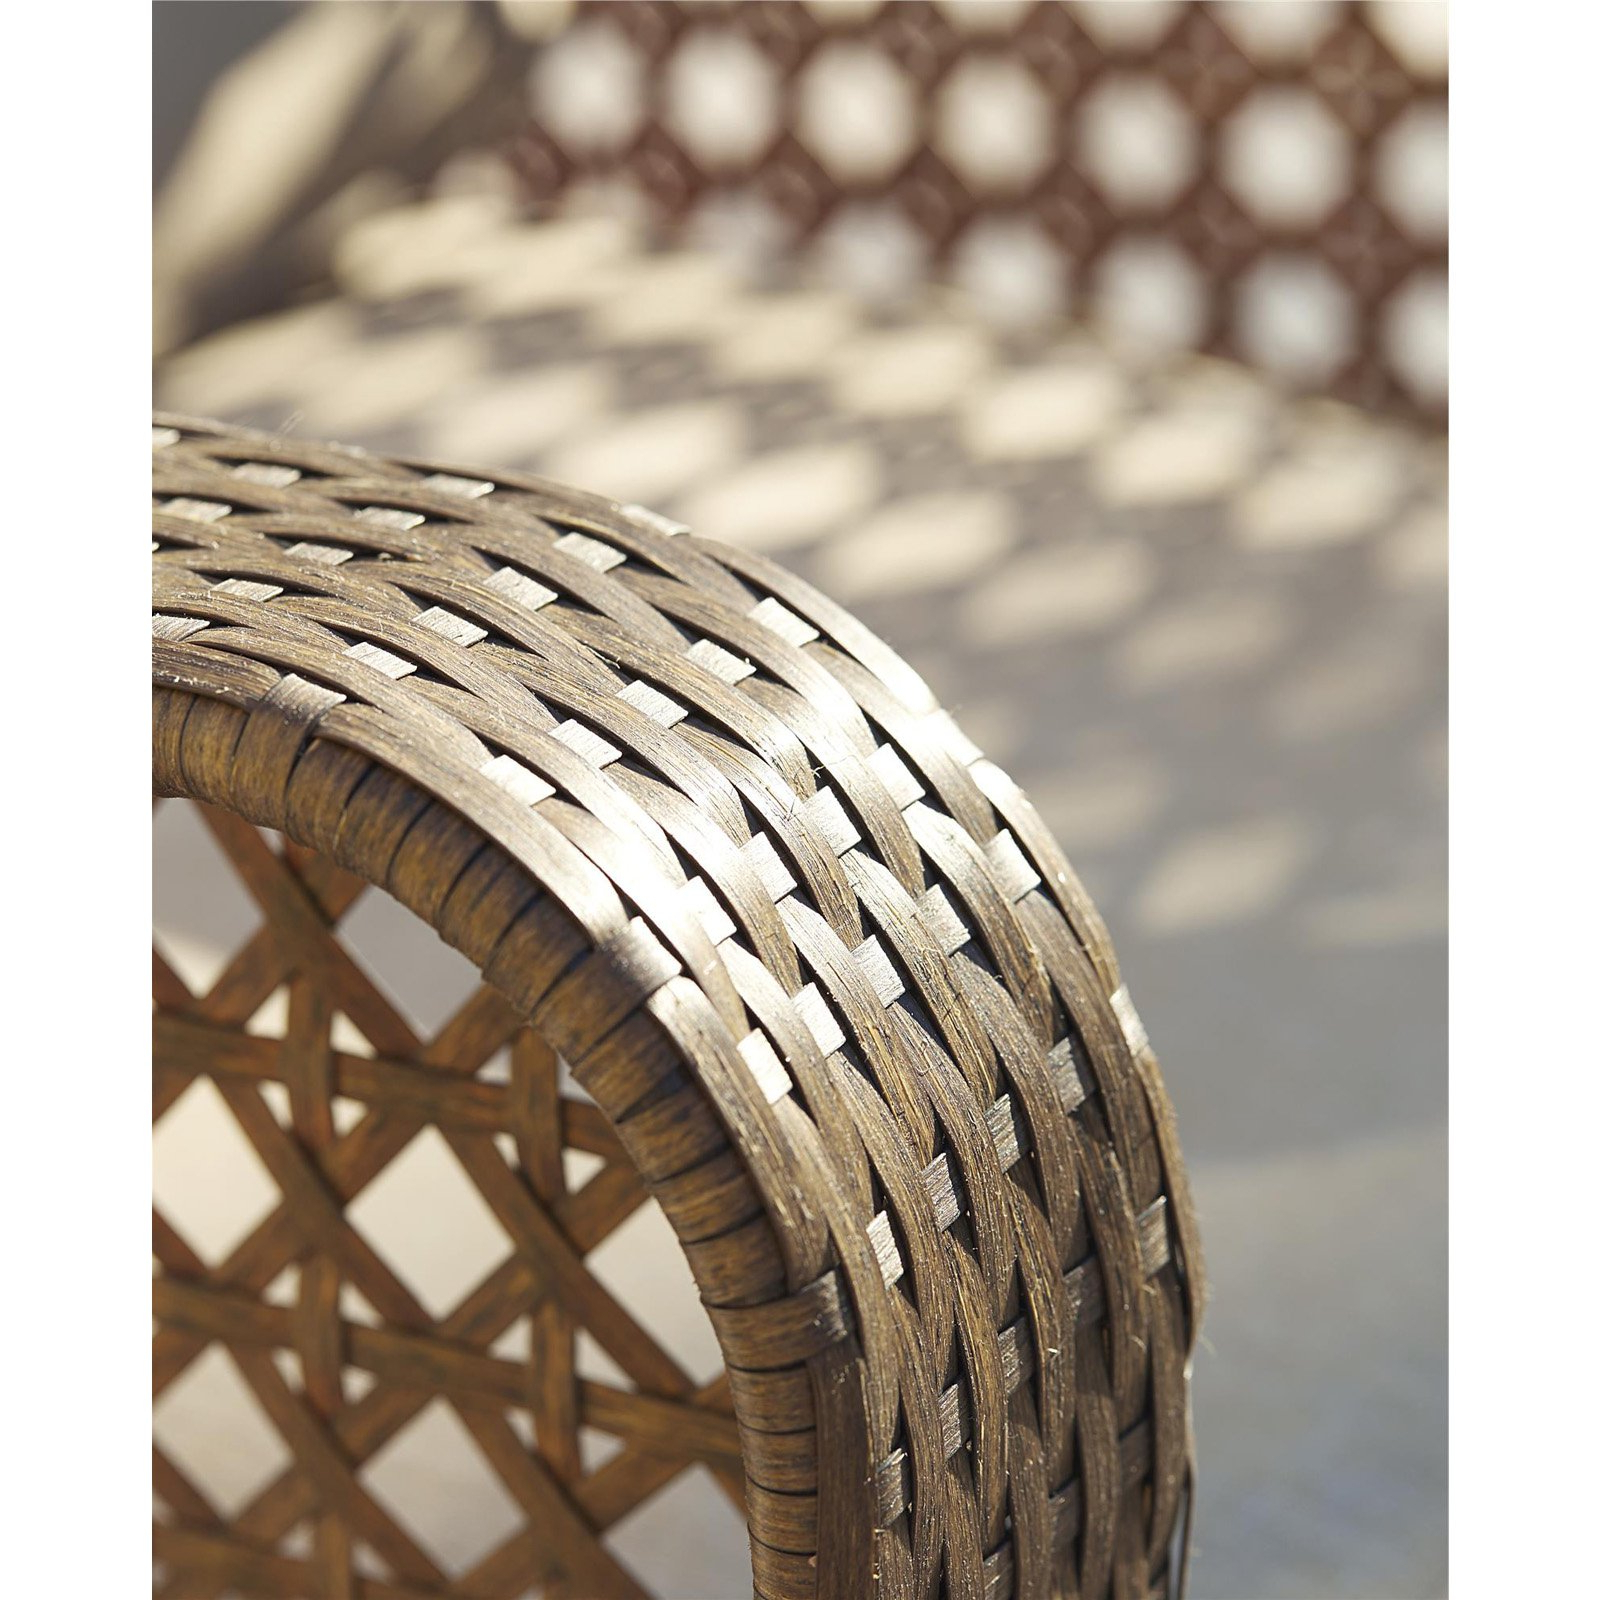 Cosco Outdoor Adjustable Chaise Lounge Chair Lakewood Ranch Steel Woven Wicker Patio Furniture With Cushion, Brown With Most Recently Released Cosco Outdoor Steel Woven Wicker Chaise Lounge Chairs (View 9 of 25)